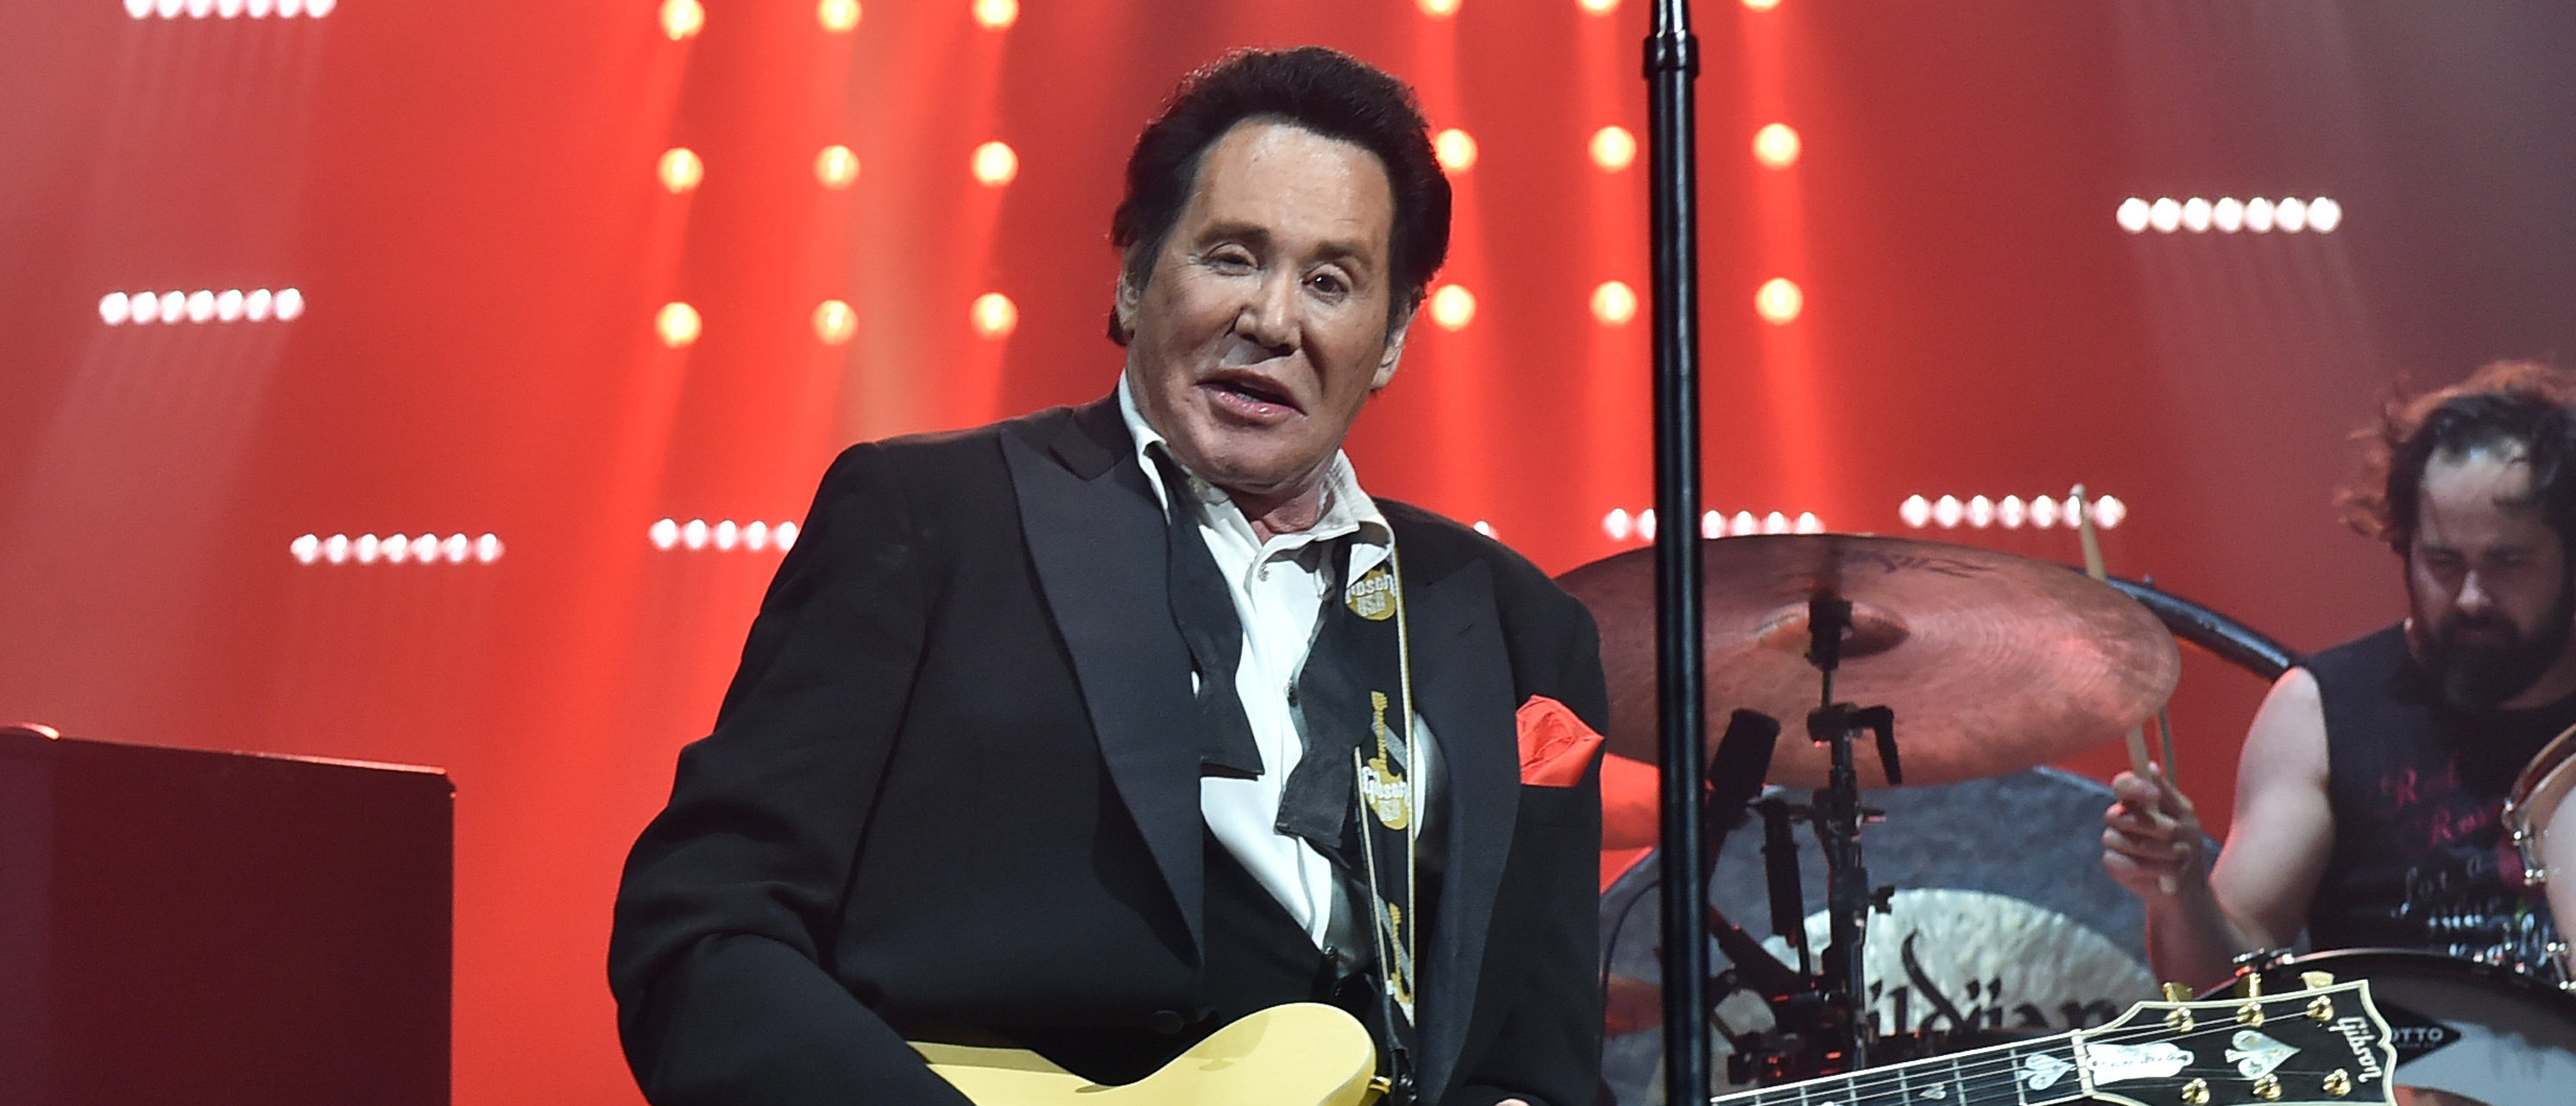 Entertainer Wayne Newton performs with The Killers onstage during the grand opening of T-Mobile Arena on April 6, 2016 in Las Vegas, Nevada. (Photo by Kevin Winter/Getty Images for ABA)